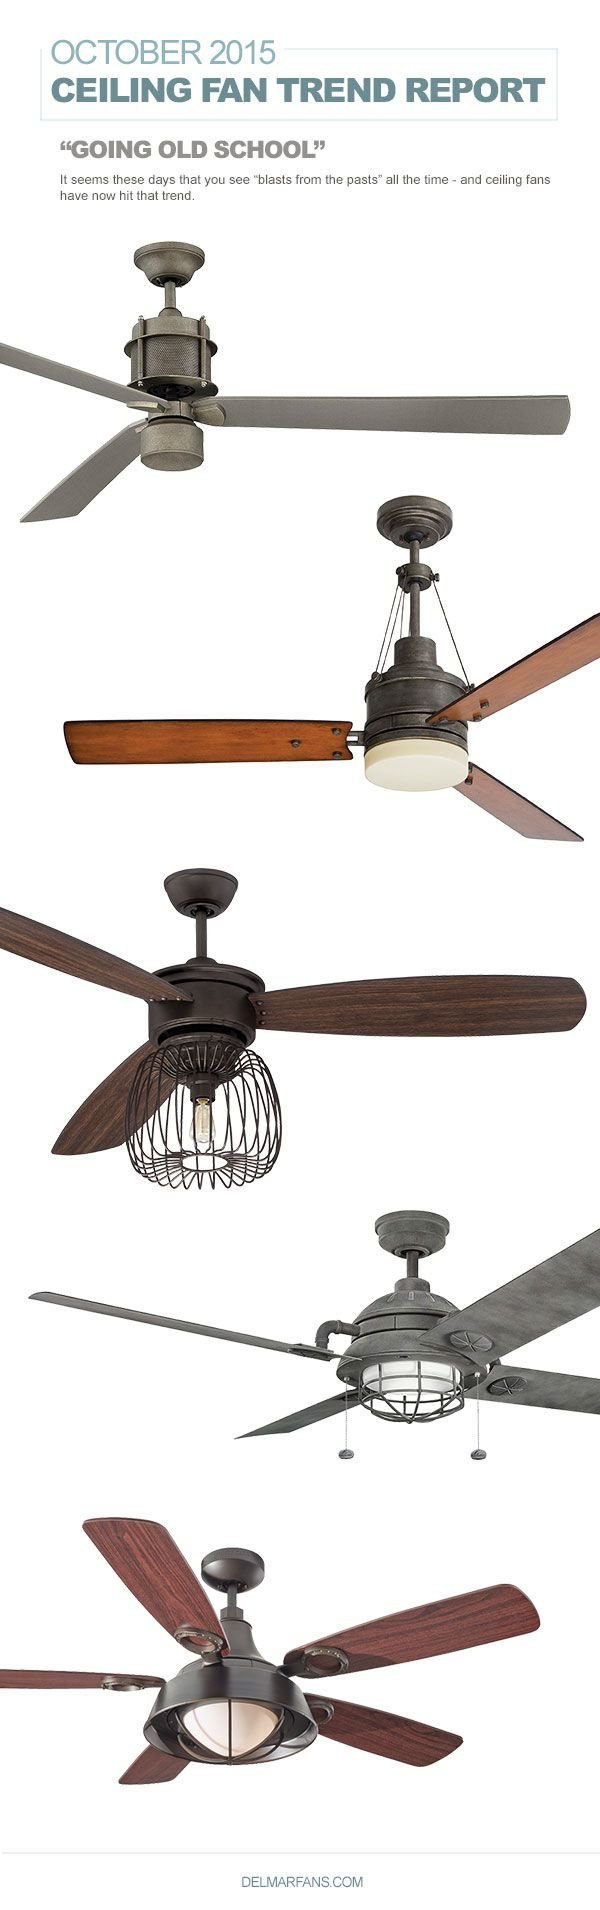 Vintage Industrial Ceiling Fans Trending For October 2015